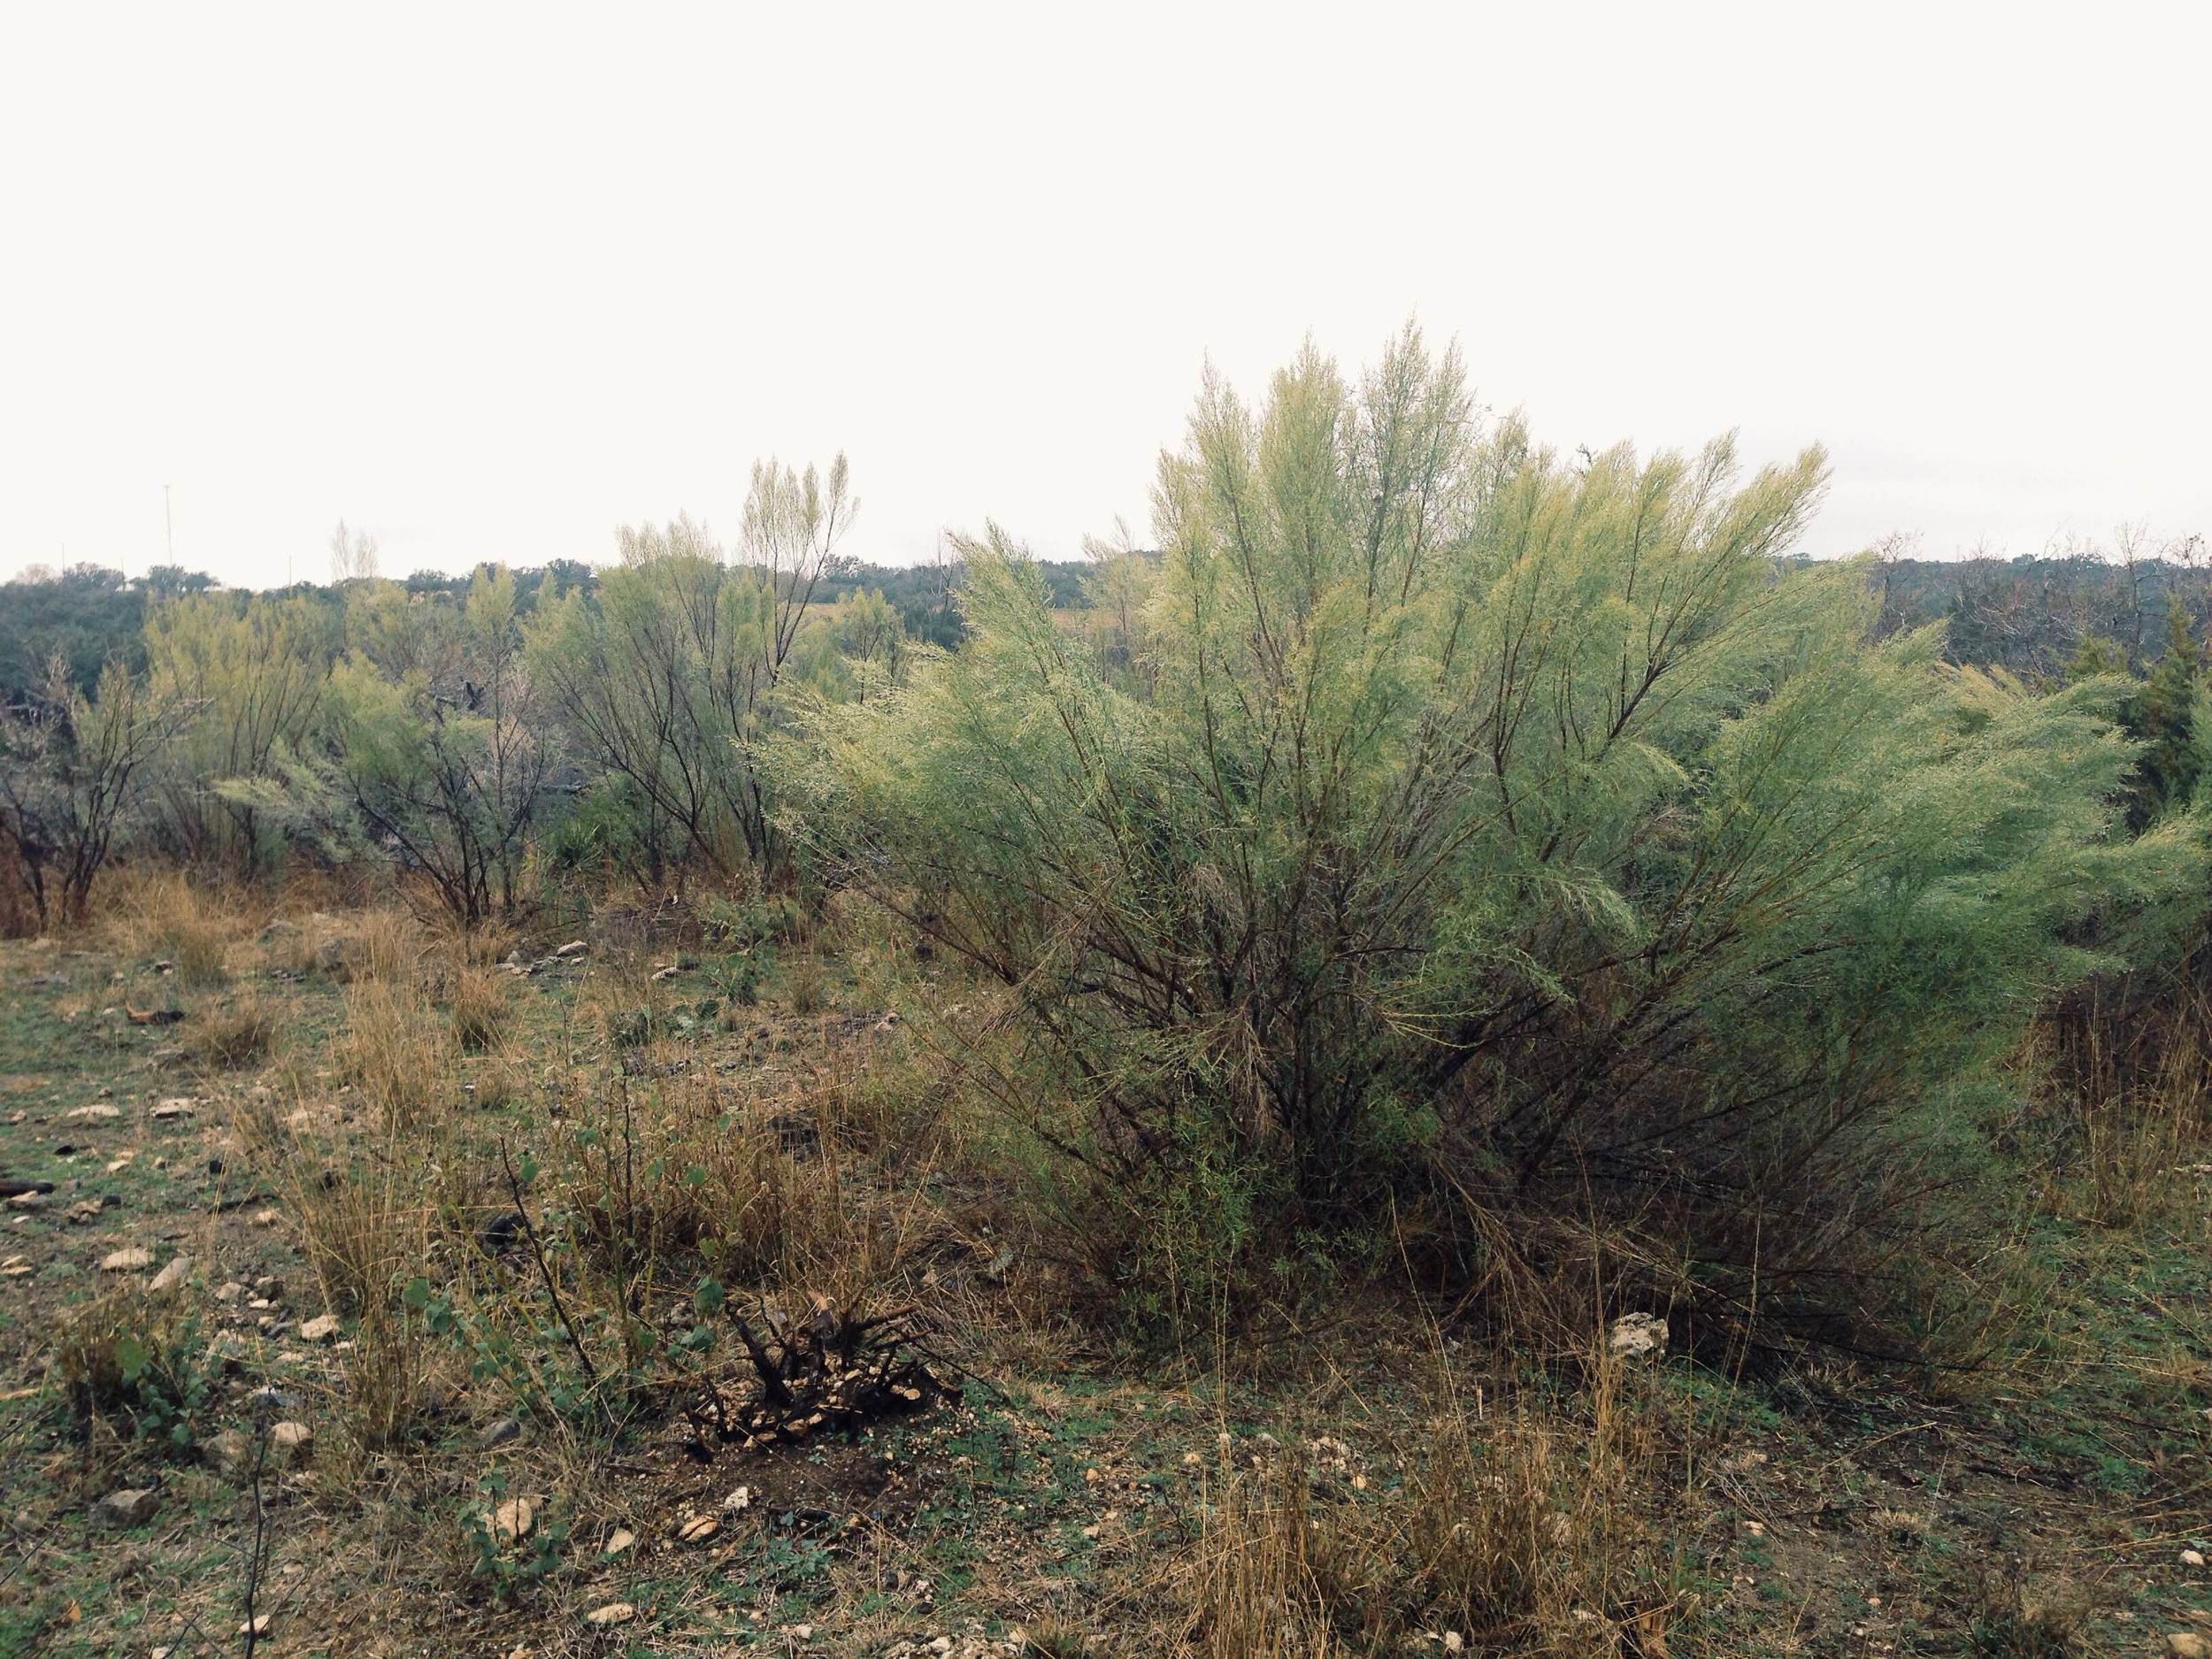 Plant: Baccharis neglecta, Roosevelt Weed | Location: Double Eagle Ranch, Burnet Co., Texas